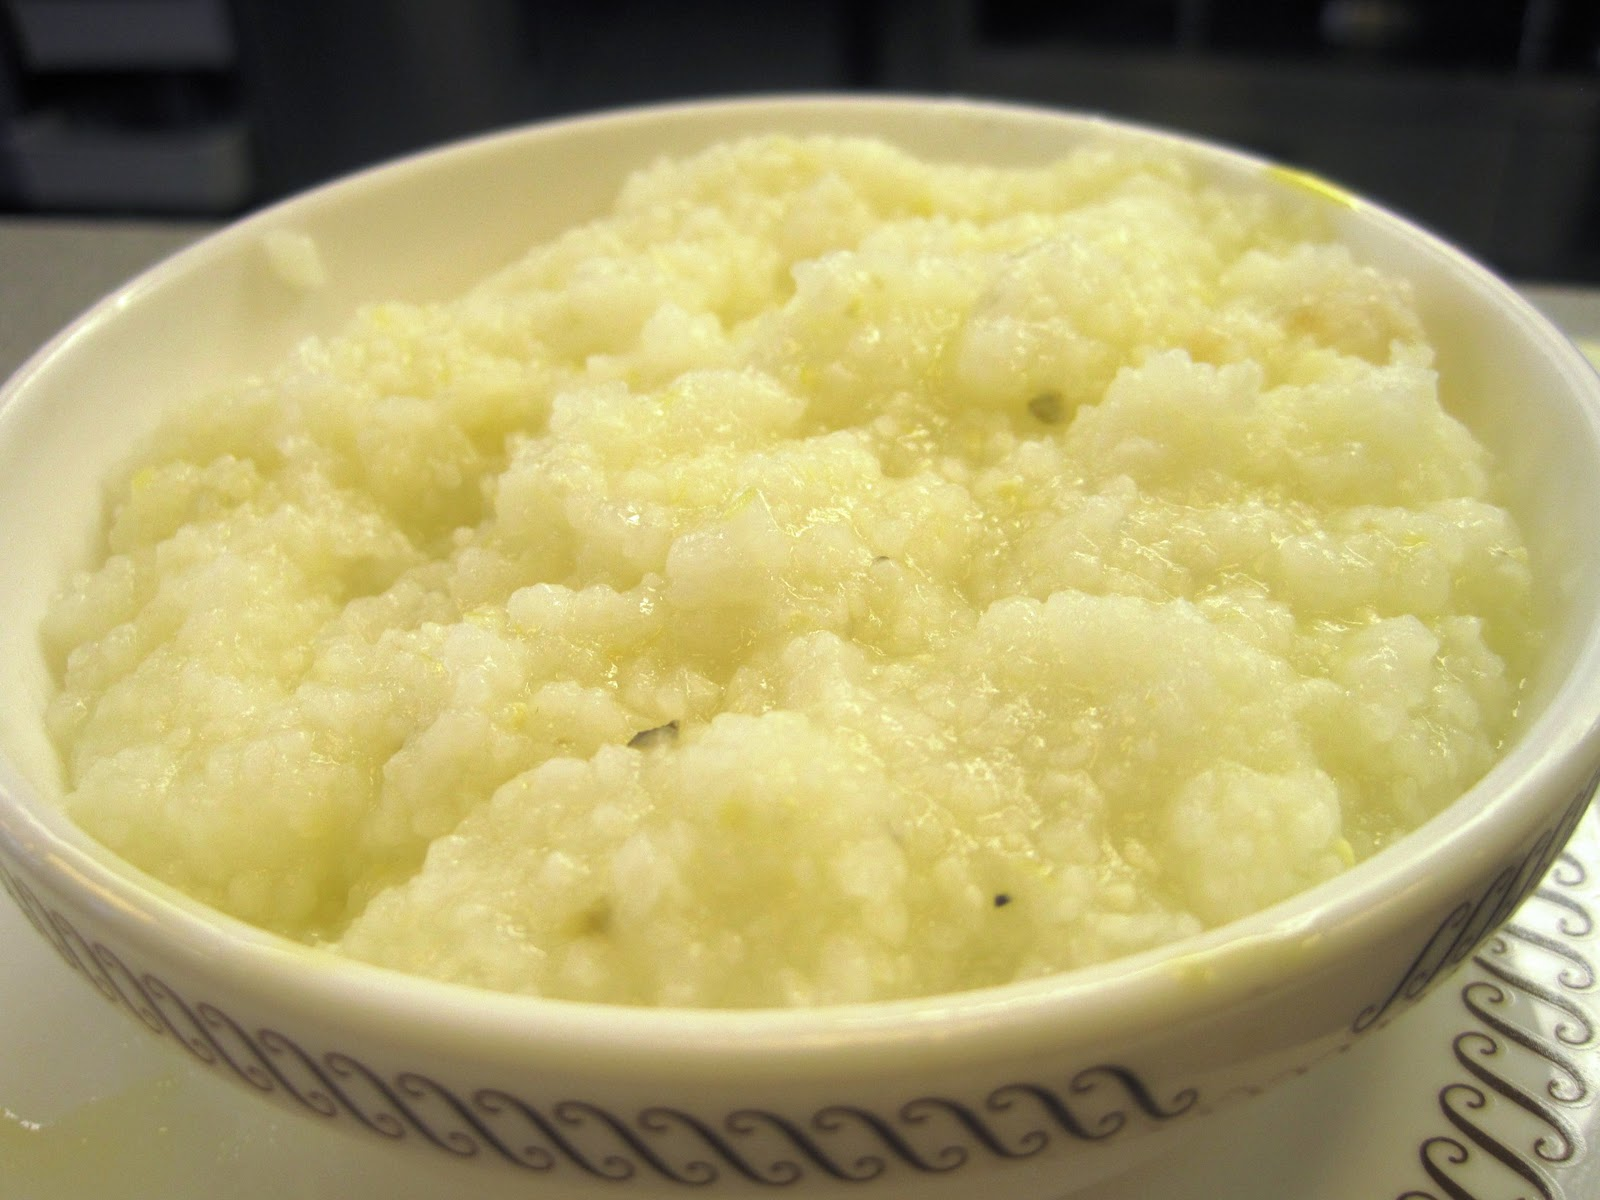 my bowl of grits, i prefer them w/cheese or sweet but i didn't have ...